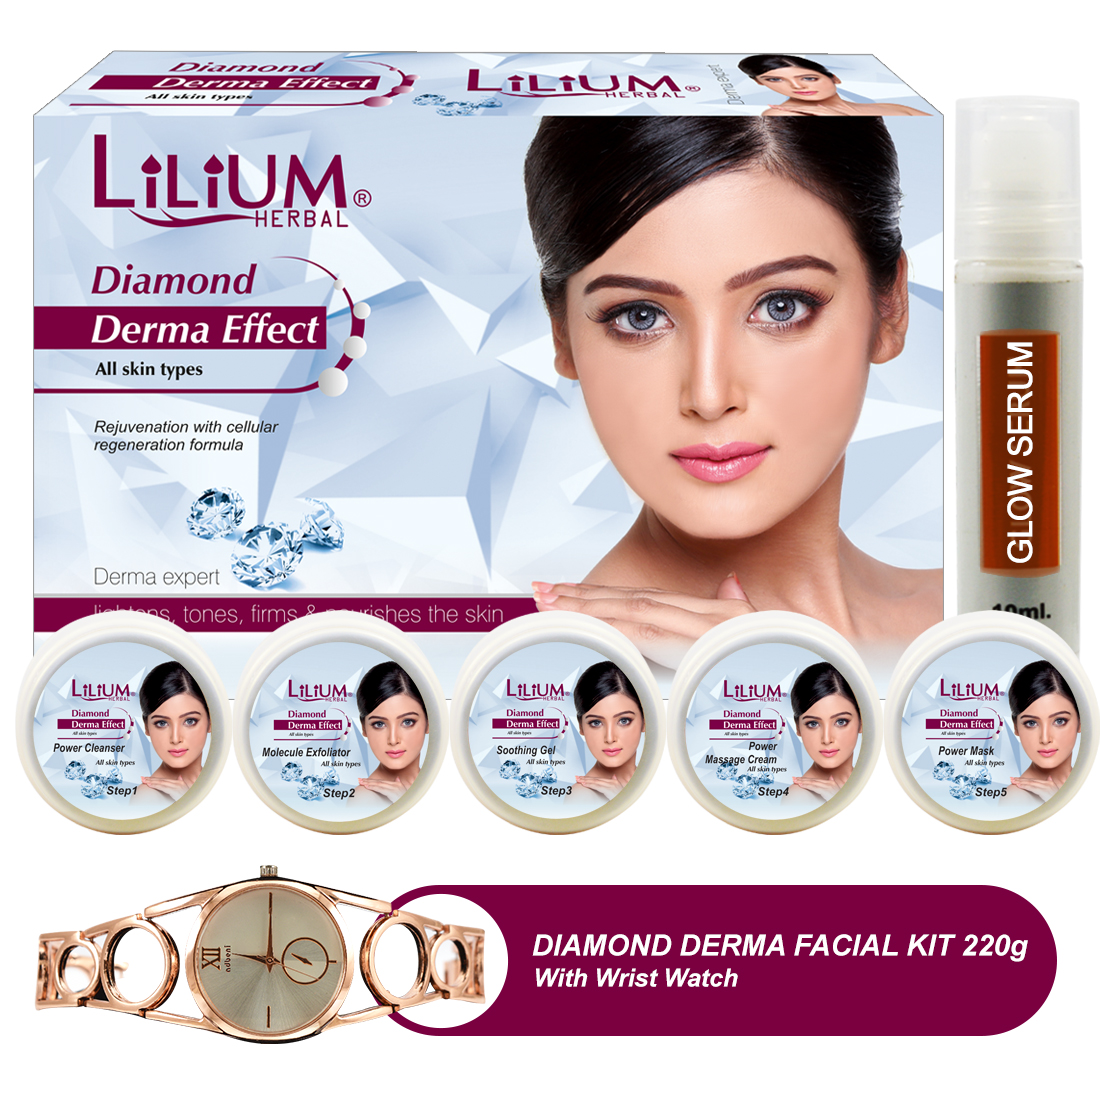 Lilium Diamond Derma Effect Facial Kit220gm With Wrist Watch Pack of 2